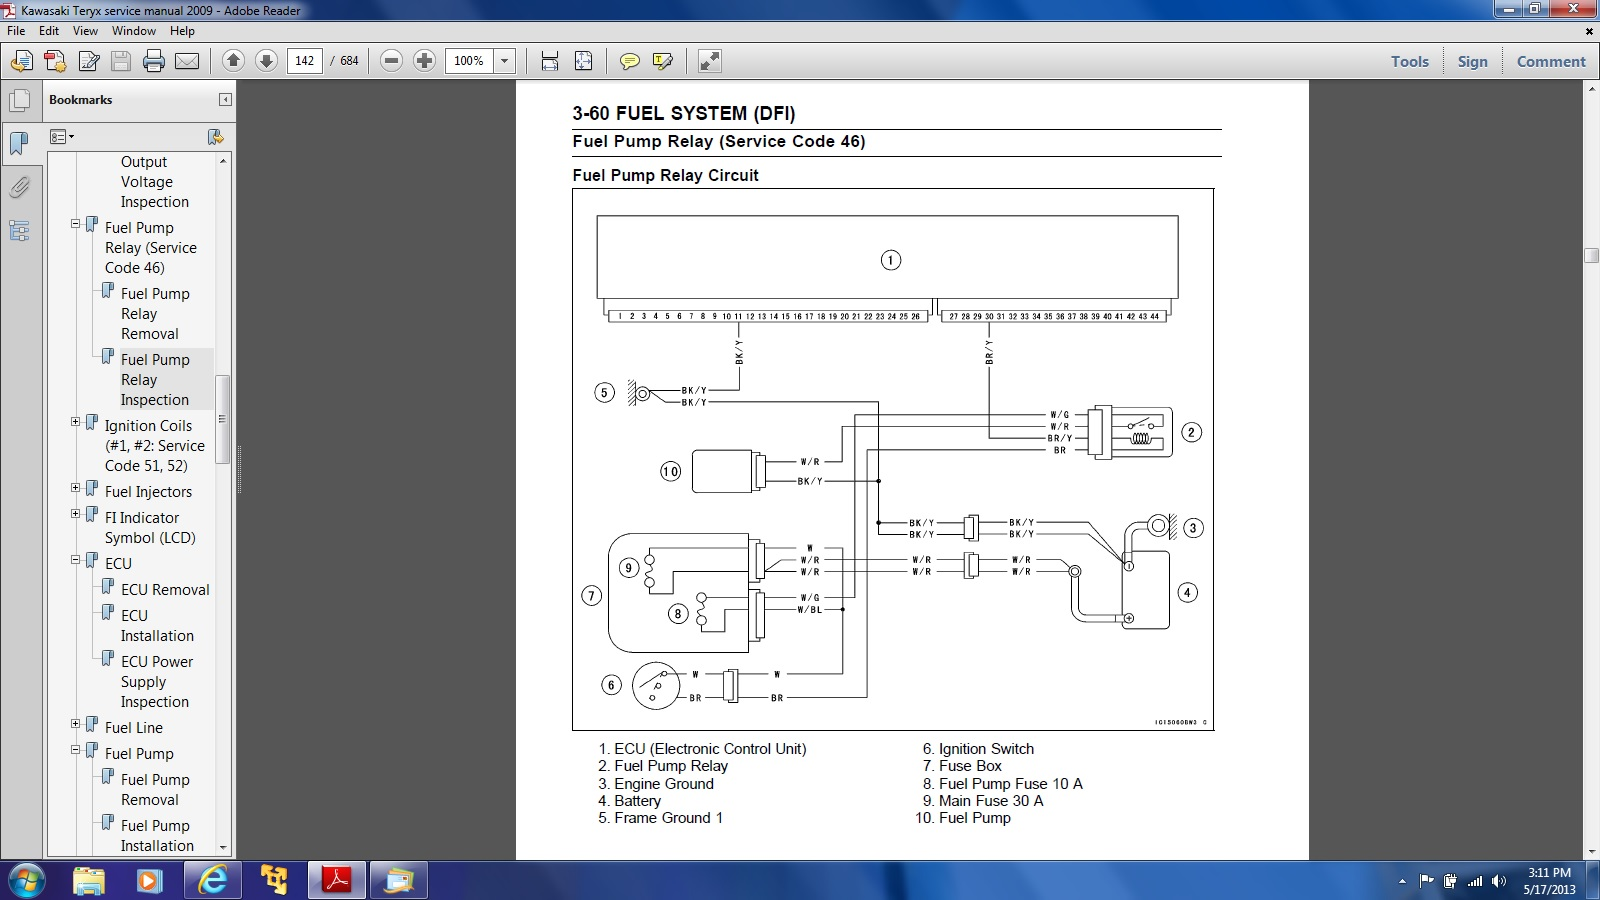 hight resolution of  mule 3010 wiring diagram no power to fuel pump ecu issues kawasaki teryx forumclick image for larger version name